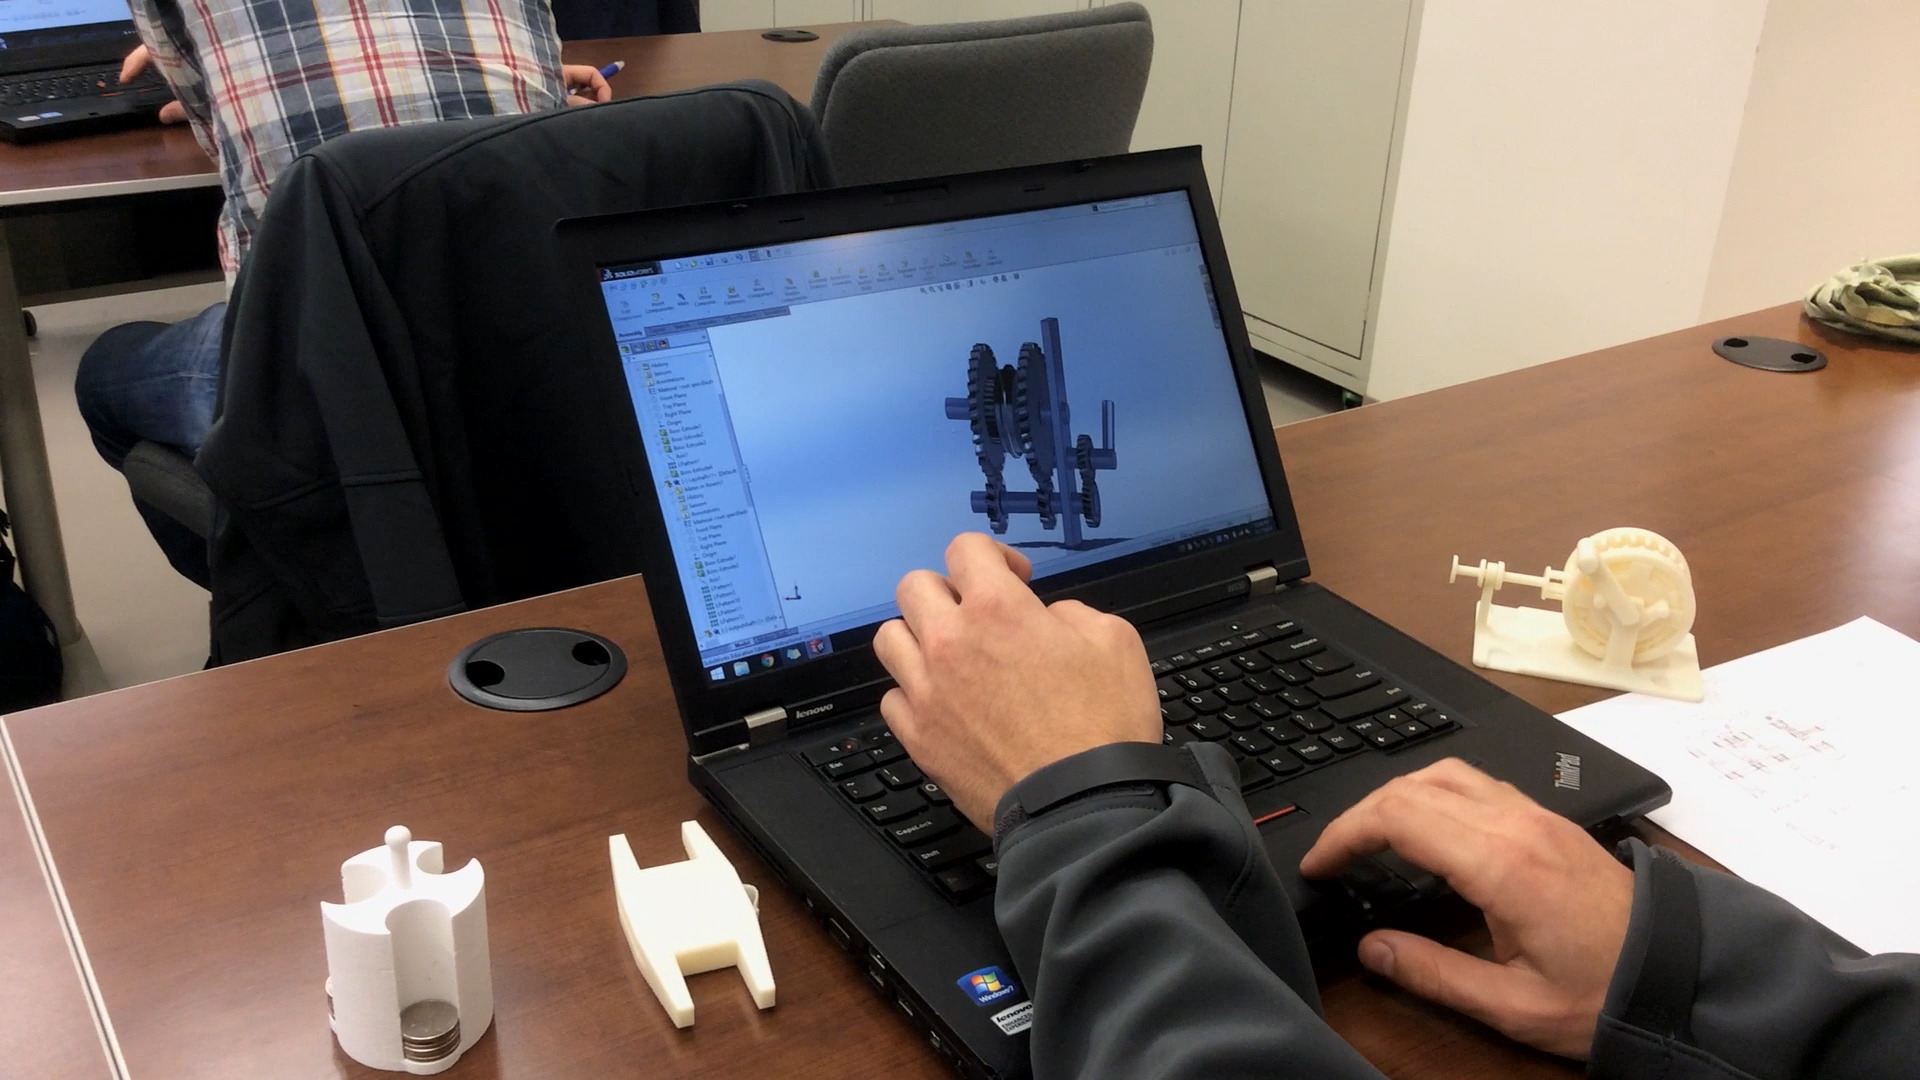 Student using GRABCAD software.